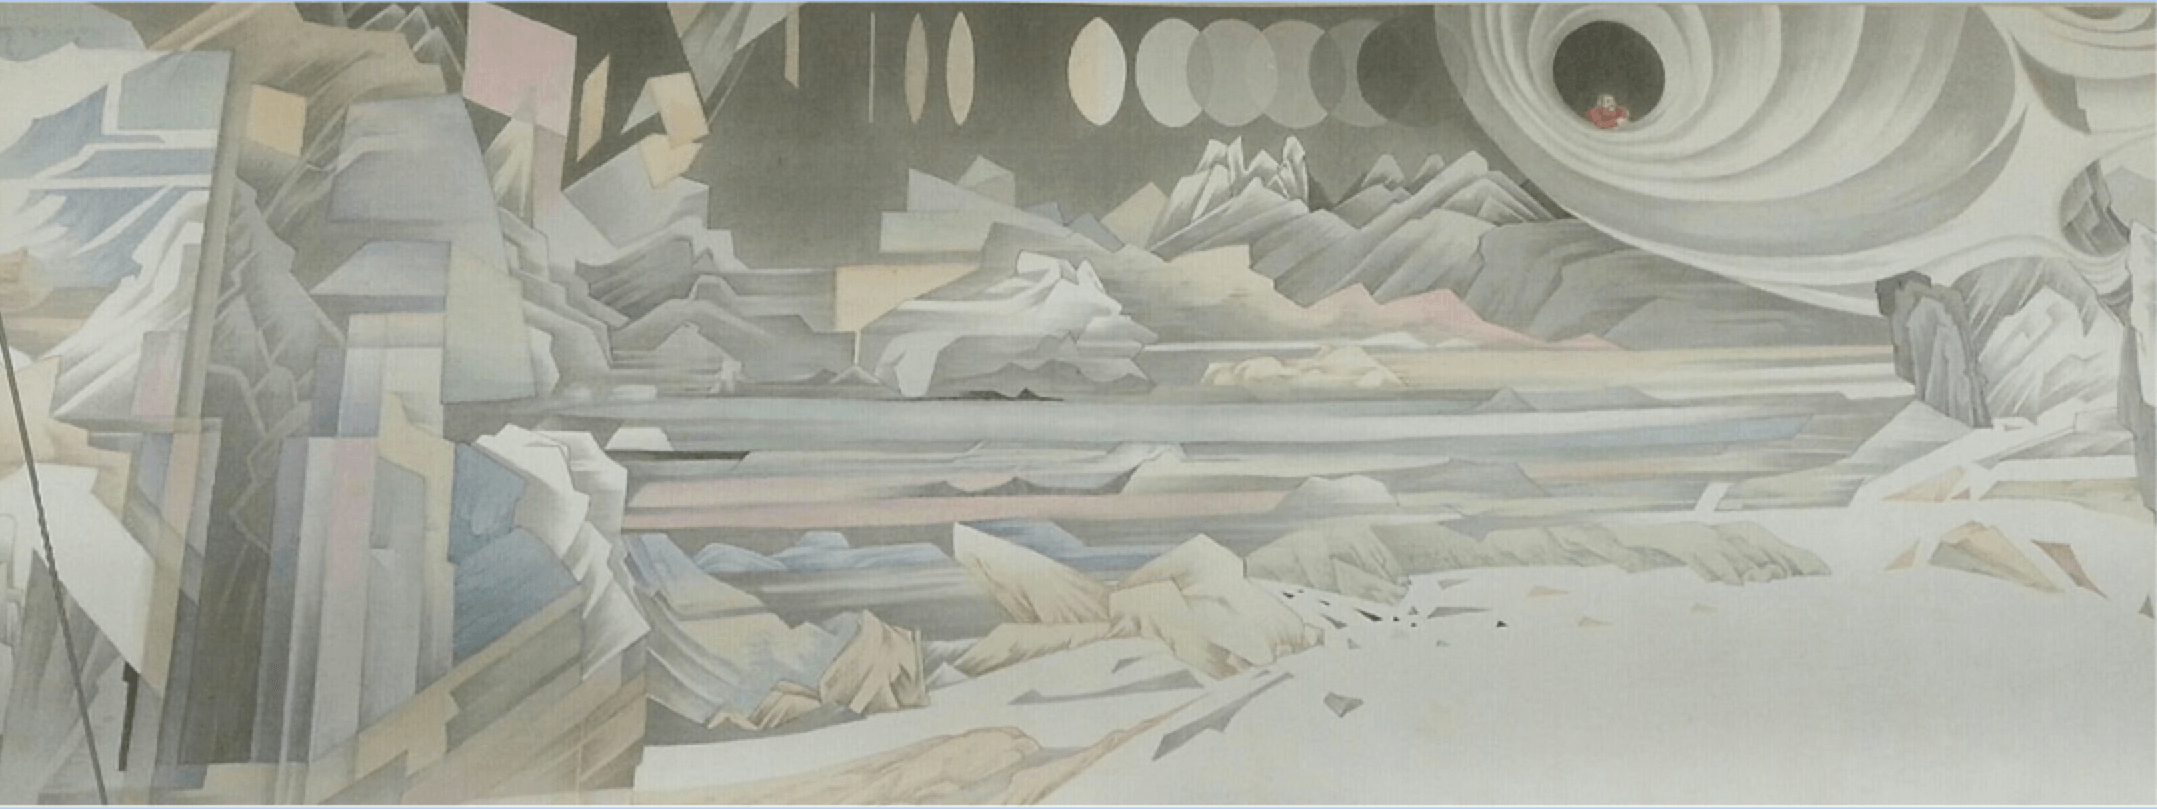 (detail) Hao Liang, Streams and Mountains without End, 2017, ink and color on silk, 16 11/16 × 395 1/4 inches (© Hao Liang)